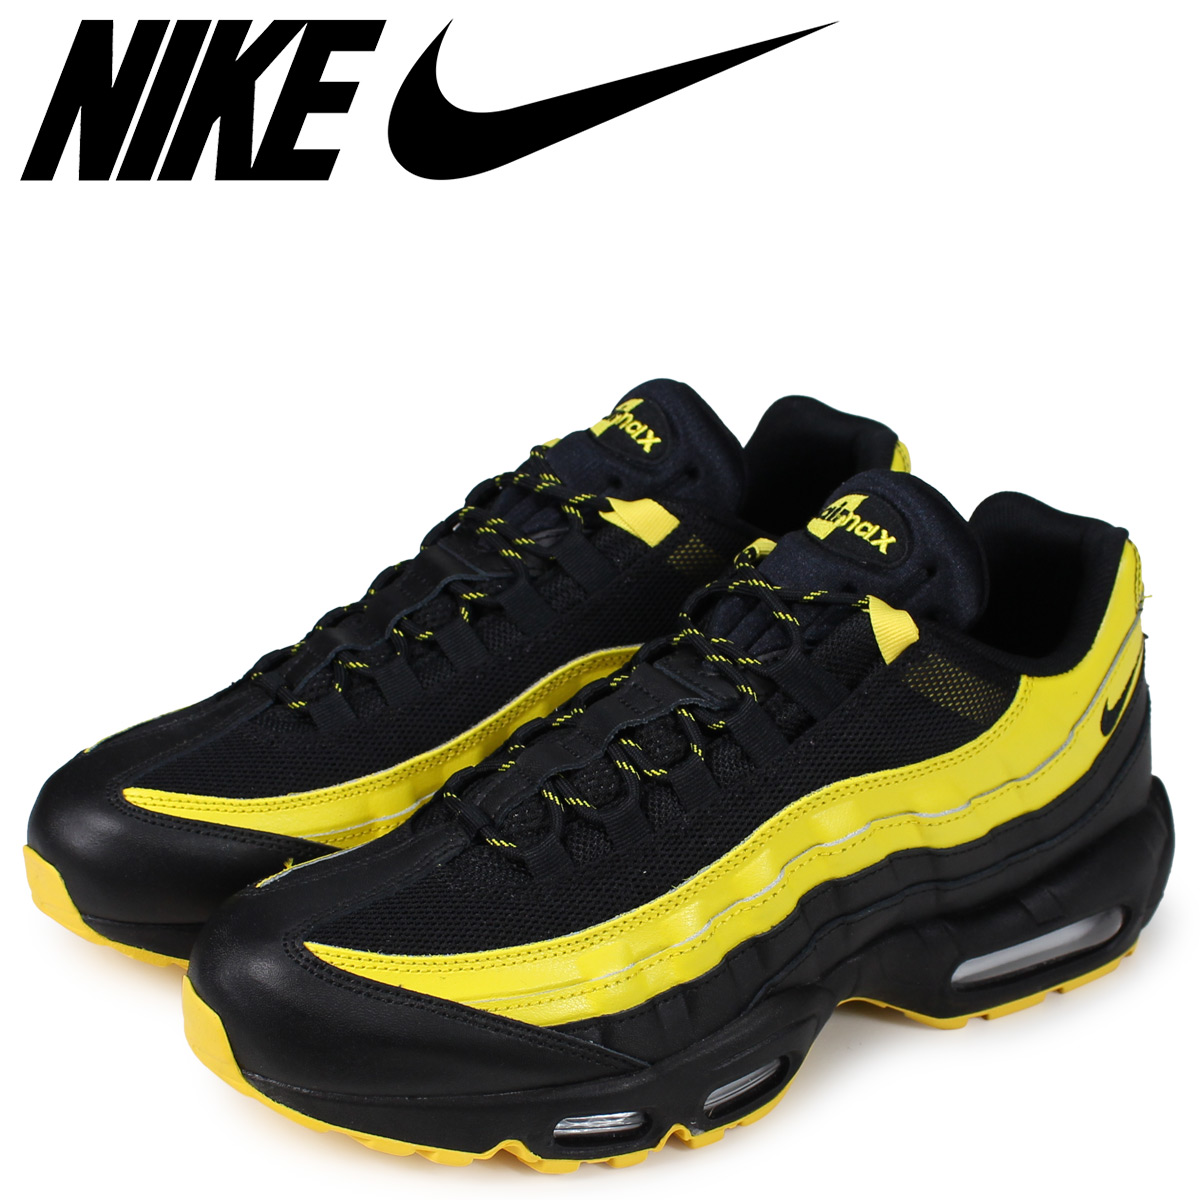 Athletic Shoes Nike Air Max 95 Frequency Pack Tour Yellow